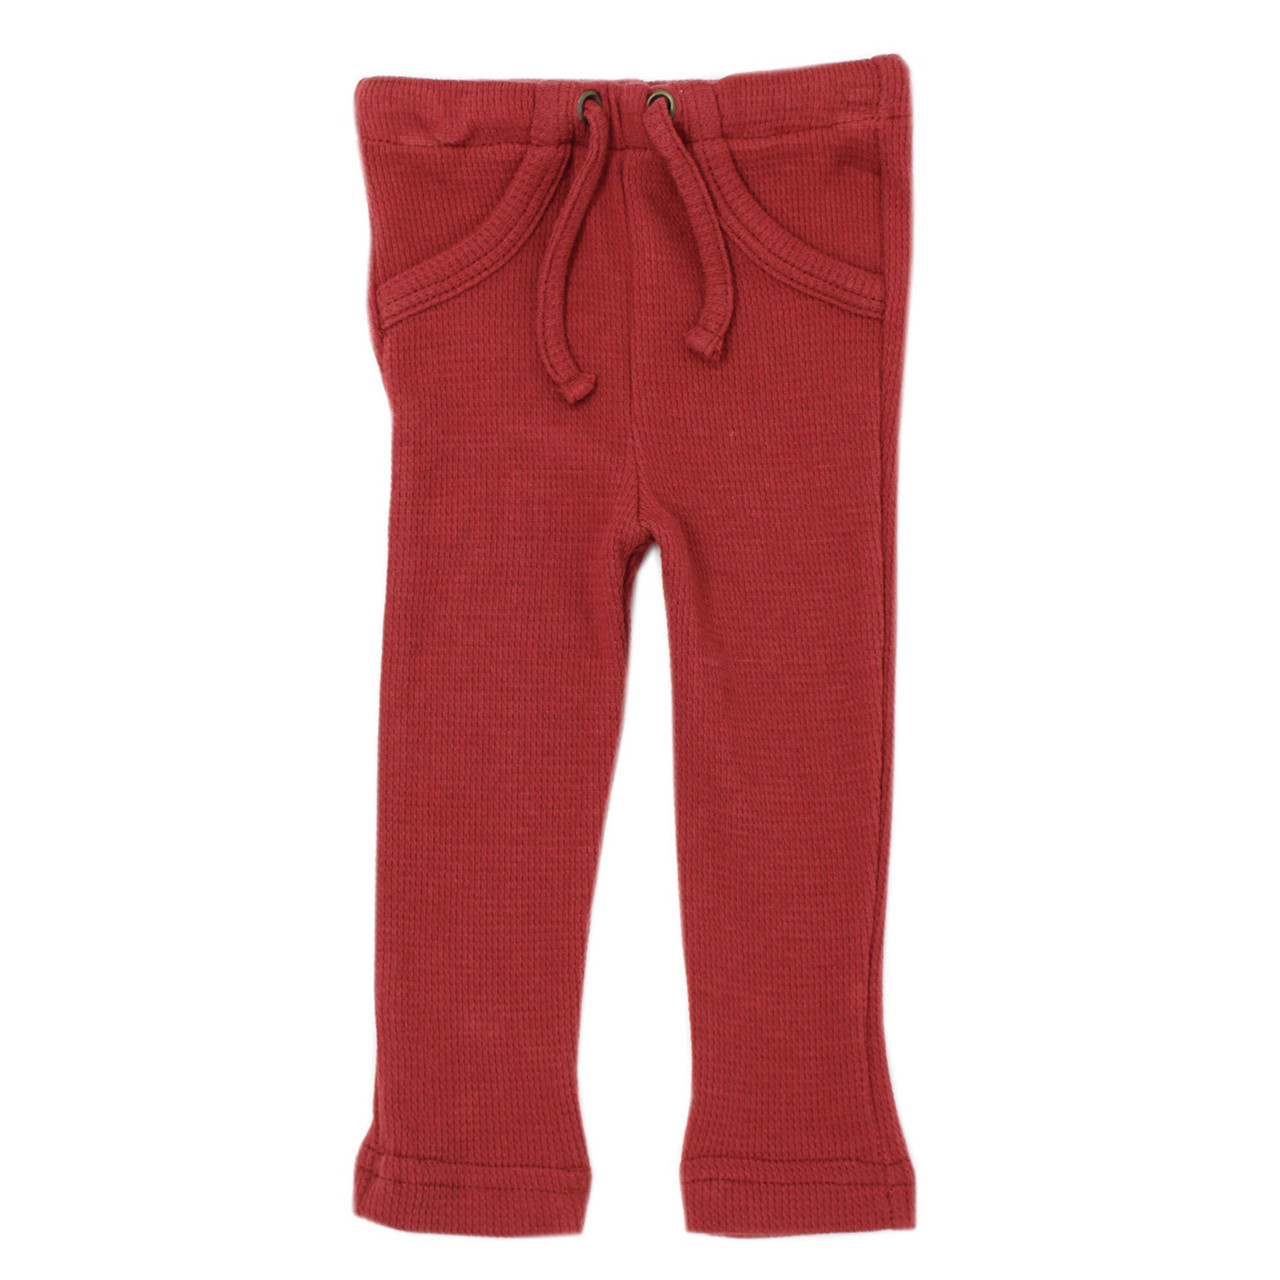 Organic Thermal Drawstring Fitted Pants in Brick, Flat